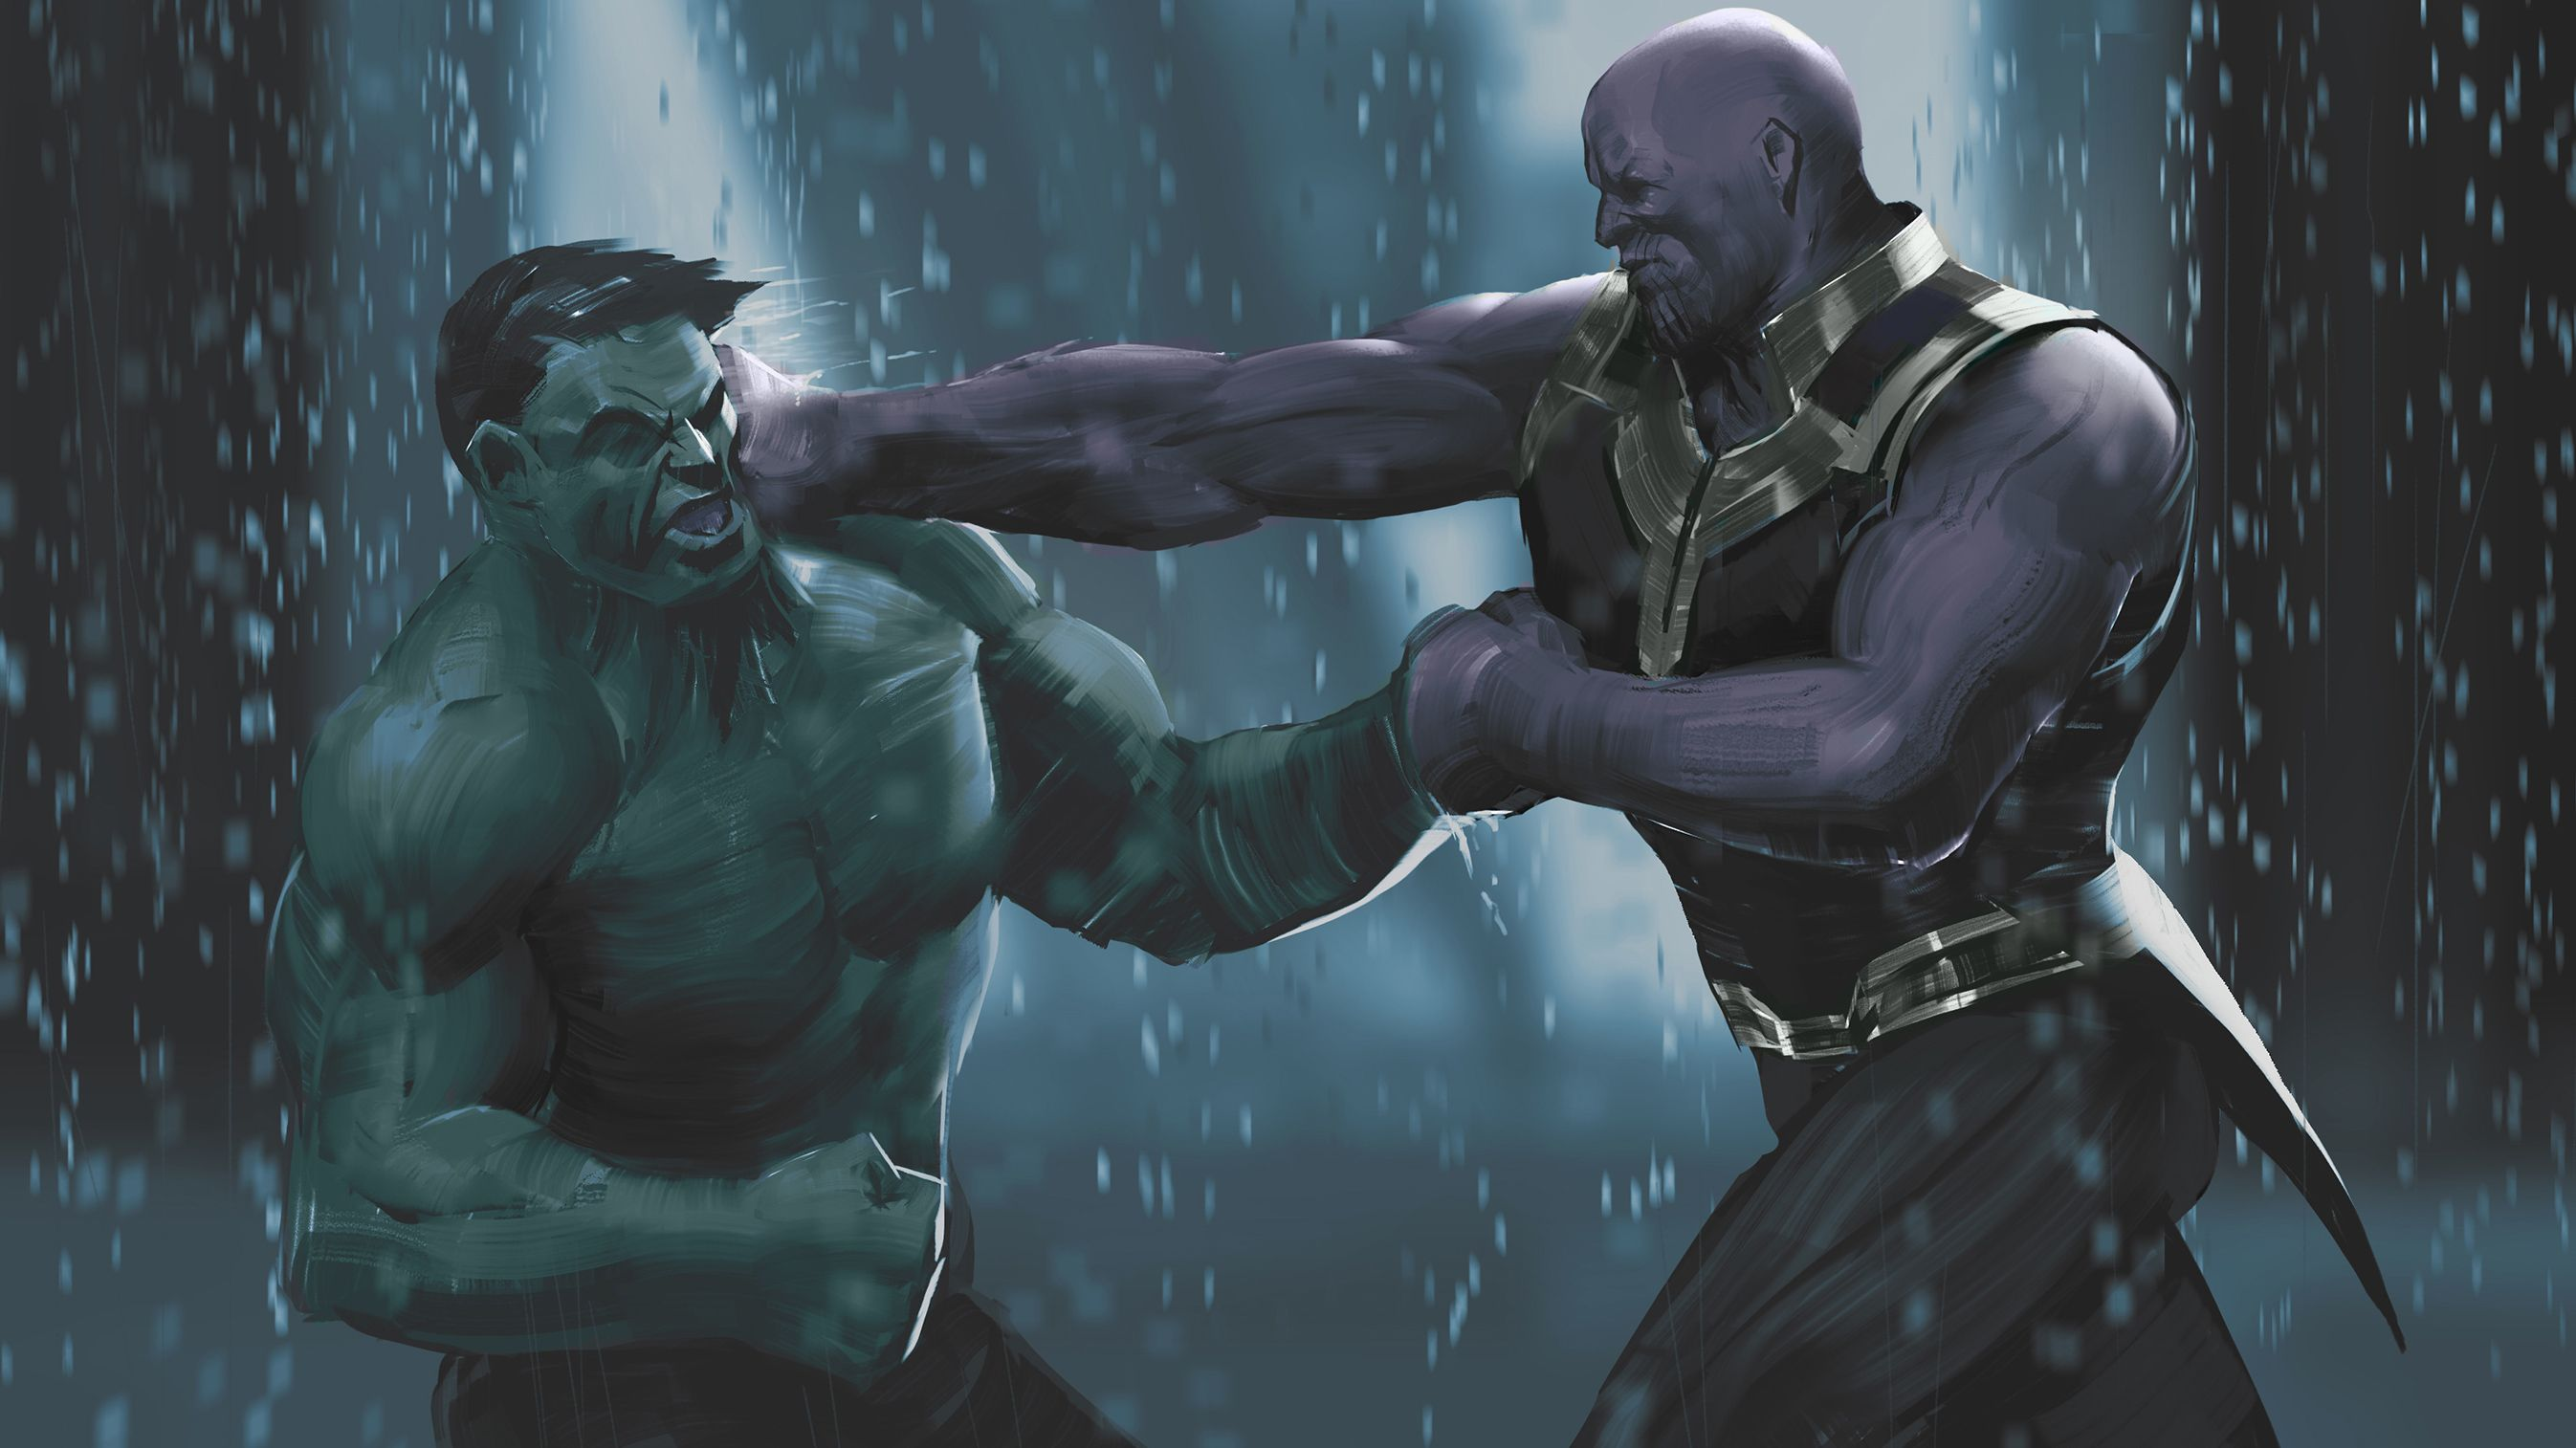 Thanos Was Able To Beat The Hulk Because He Knew How The Hulk Operated